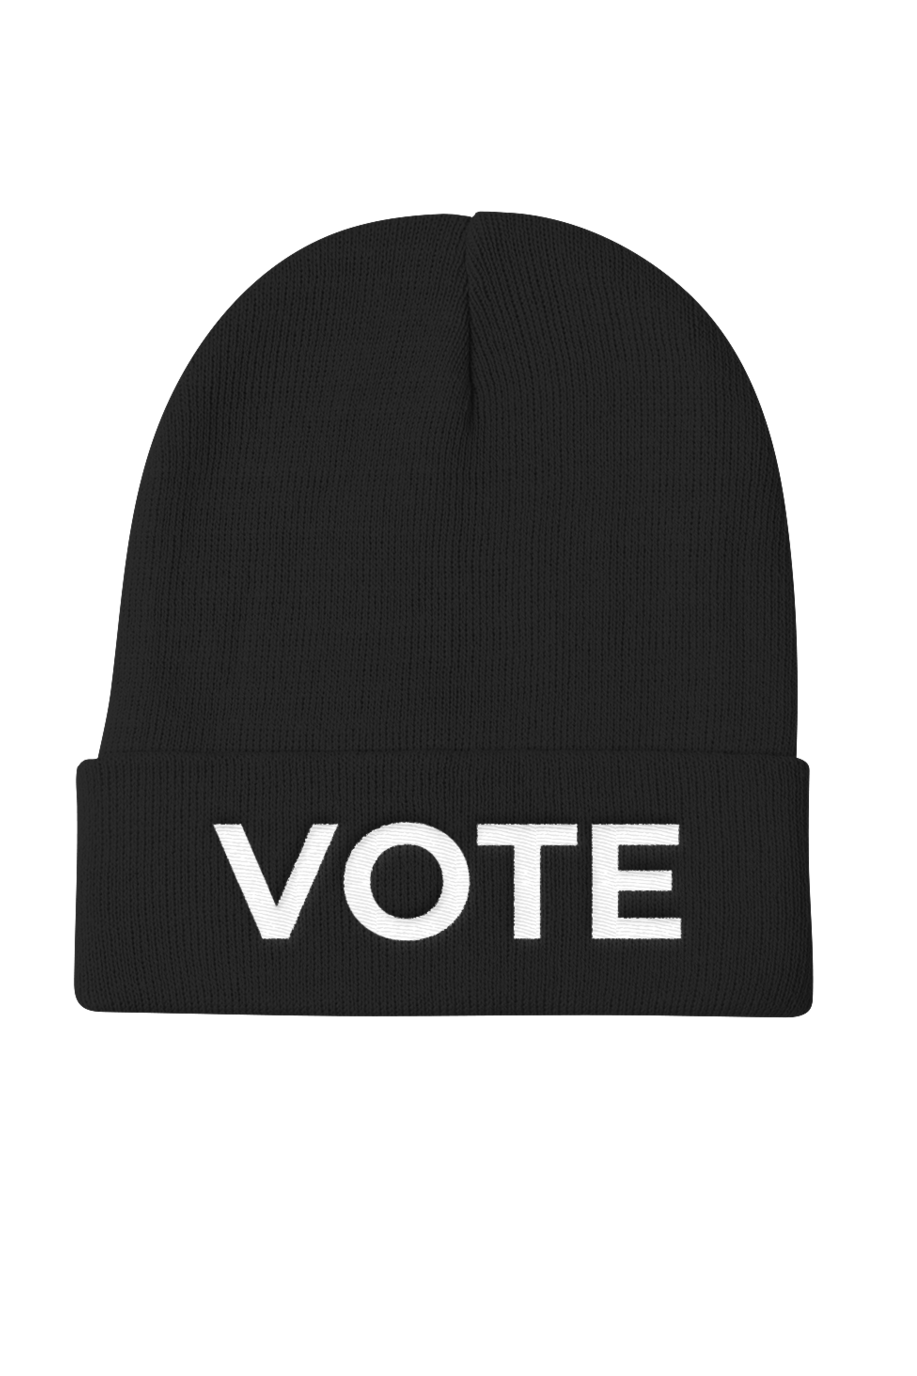 """<p><strong>Vote.org</strong></p><p>vote.org</p><p><strong>$20.00</strong></p><p><a href=""""https://shop.vote.org/collections/hats/products/vote-beanie"""" rel=""""nofollow noopener"""" target=""""_blank"""" data-ylk=""""slk:SHOP IT"""" class=""""link rapid-noclick-resp"""">SHOP IT</a></p><p>November is coming, which means you'll probably get a lot of use out of this beanie once October arrives. </p>"""